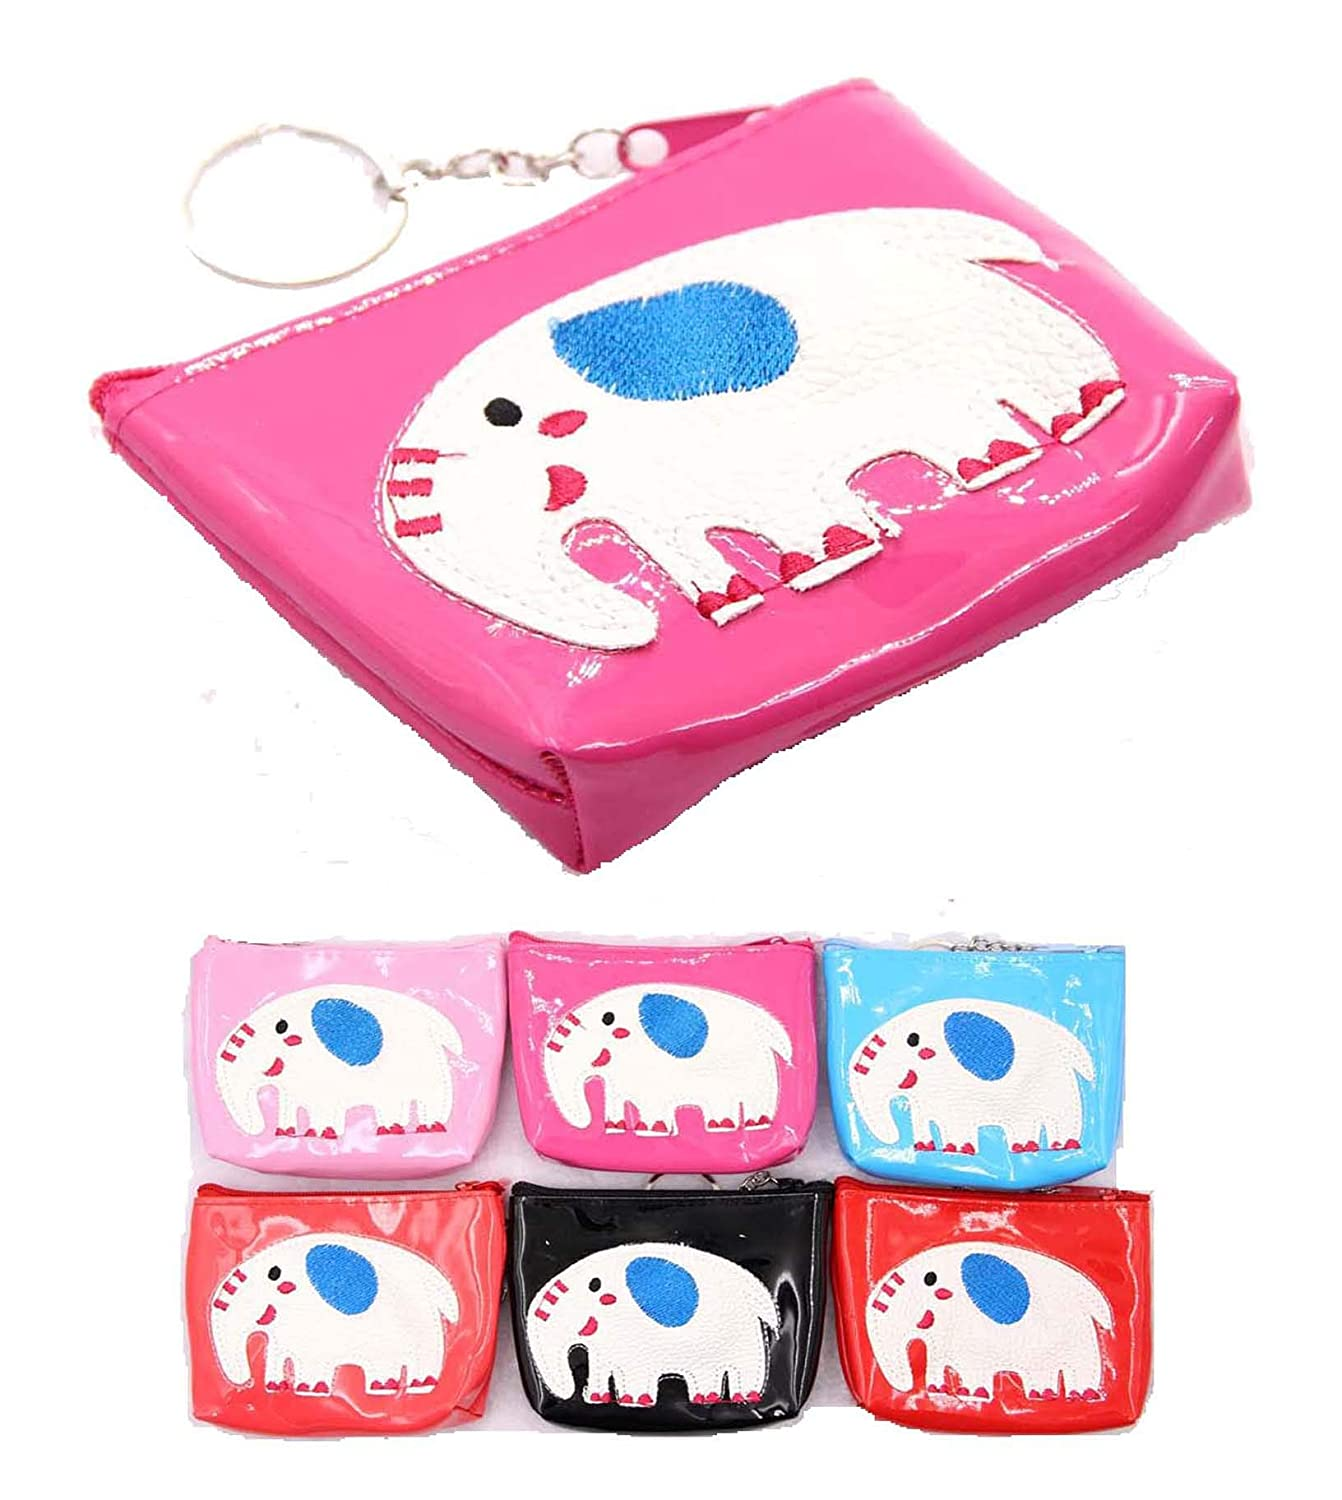 Pack of 12, 6 colors x 2 DK USA 12 pieces Girls Coin Purse ELEPHANT design